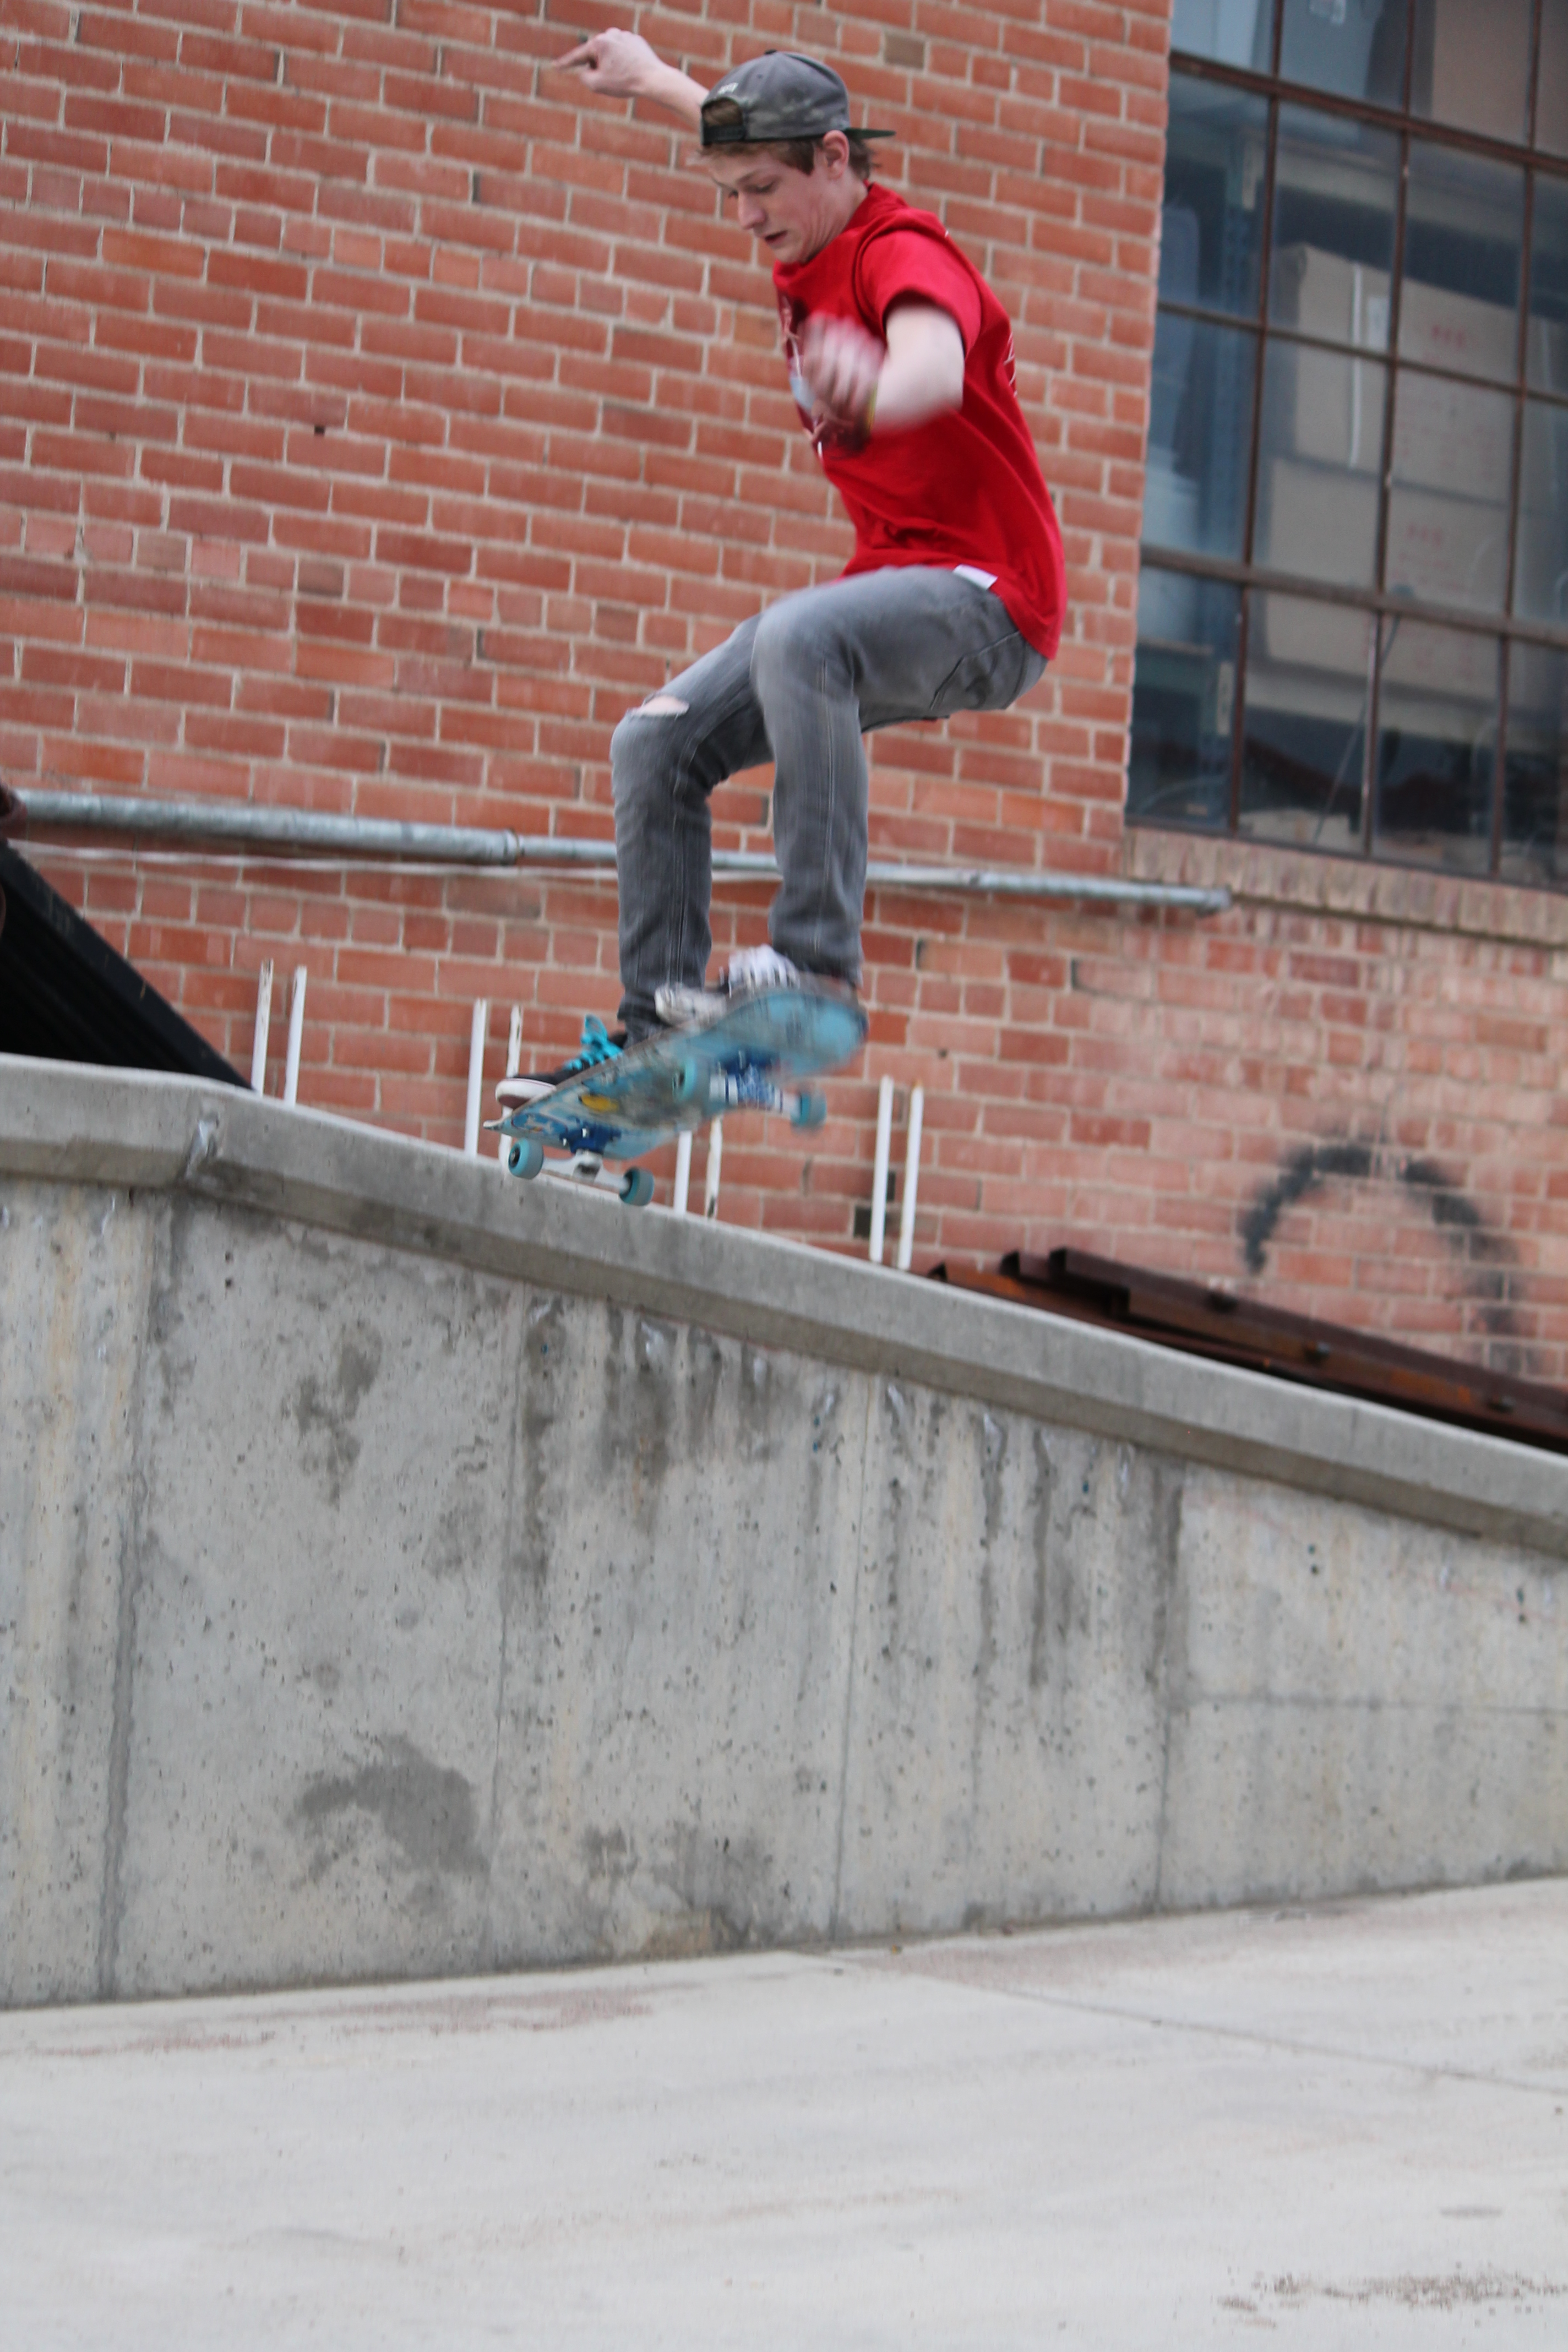 Cameron Moser makes the most of Eaton's back alleys in place of a skate park